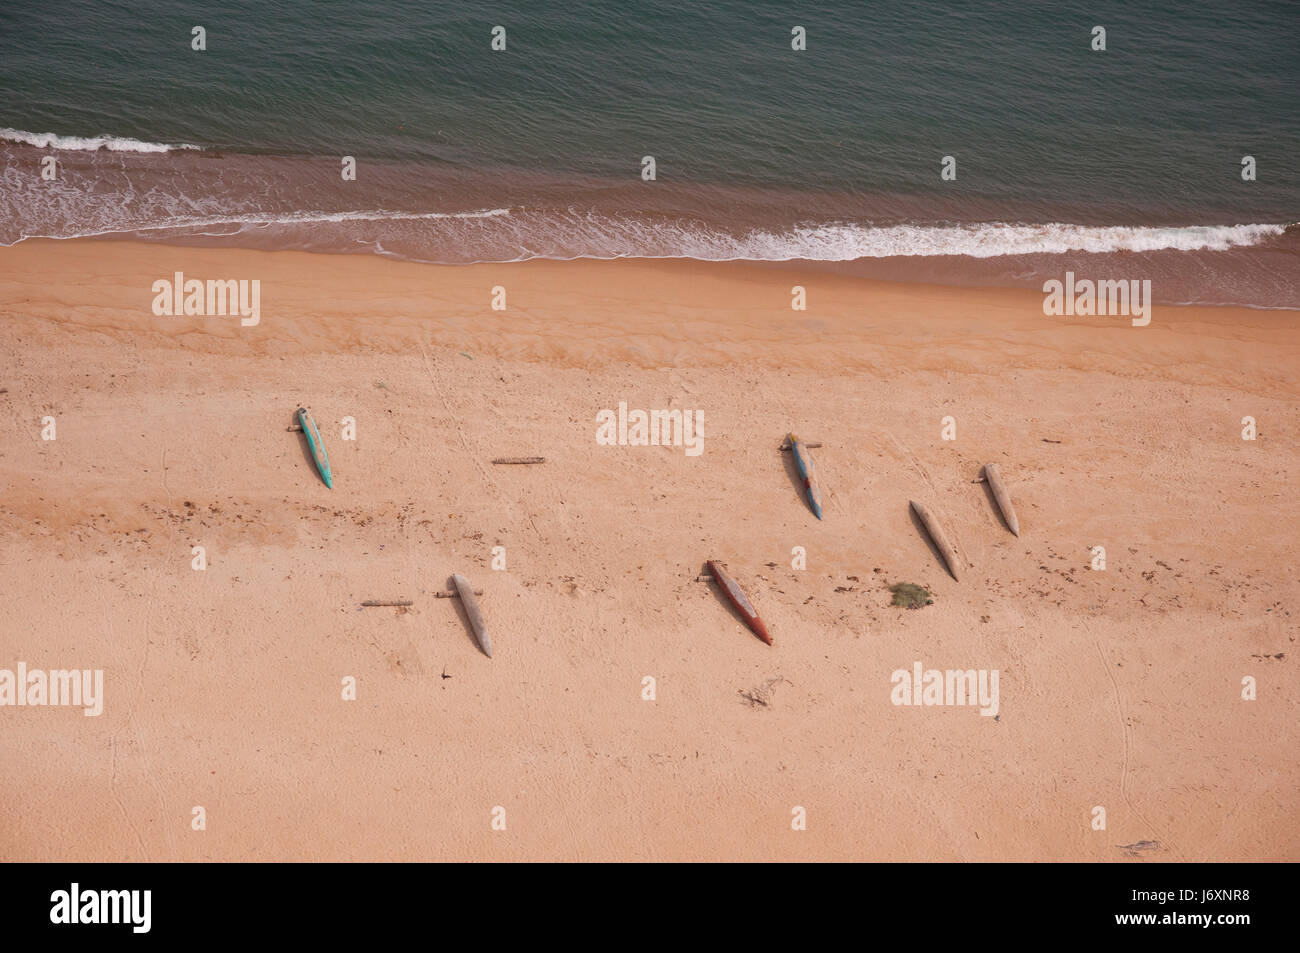 Aerial photograph of canoes, dugouts and fishing nets, midday, on a ferry flight from Monrovia to Freetown. - Stock Image